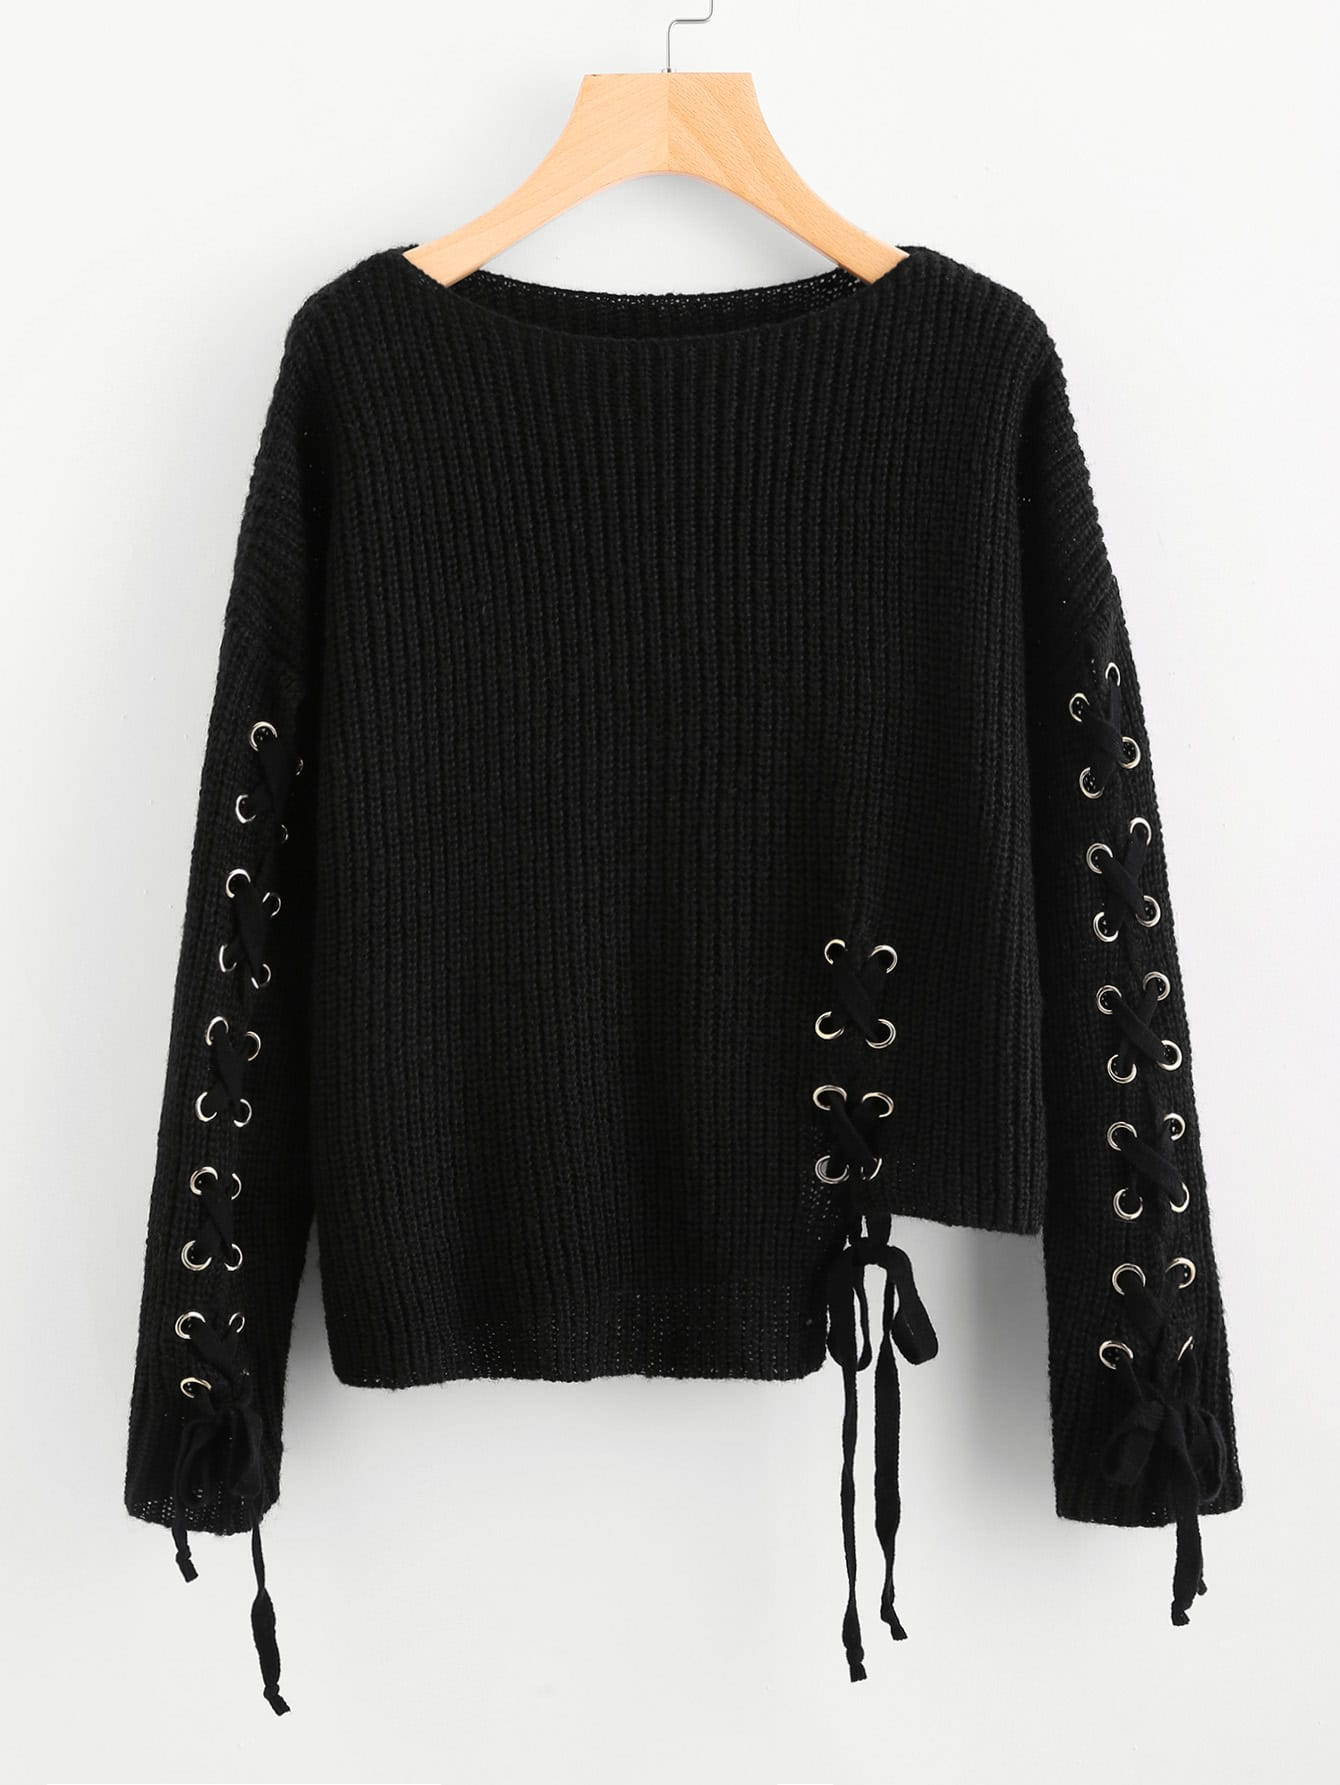 Eyelet Lace Up Staggered Jumper корпус supermicro cse 825tq 563lpb